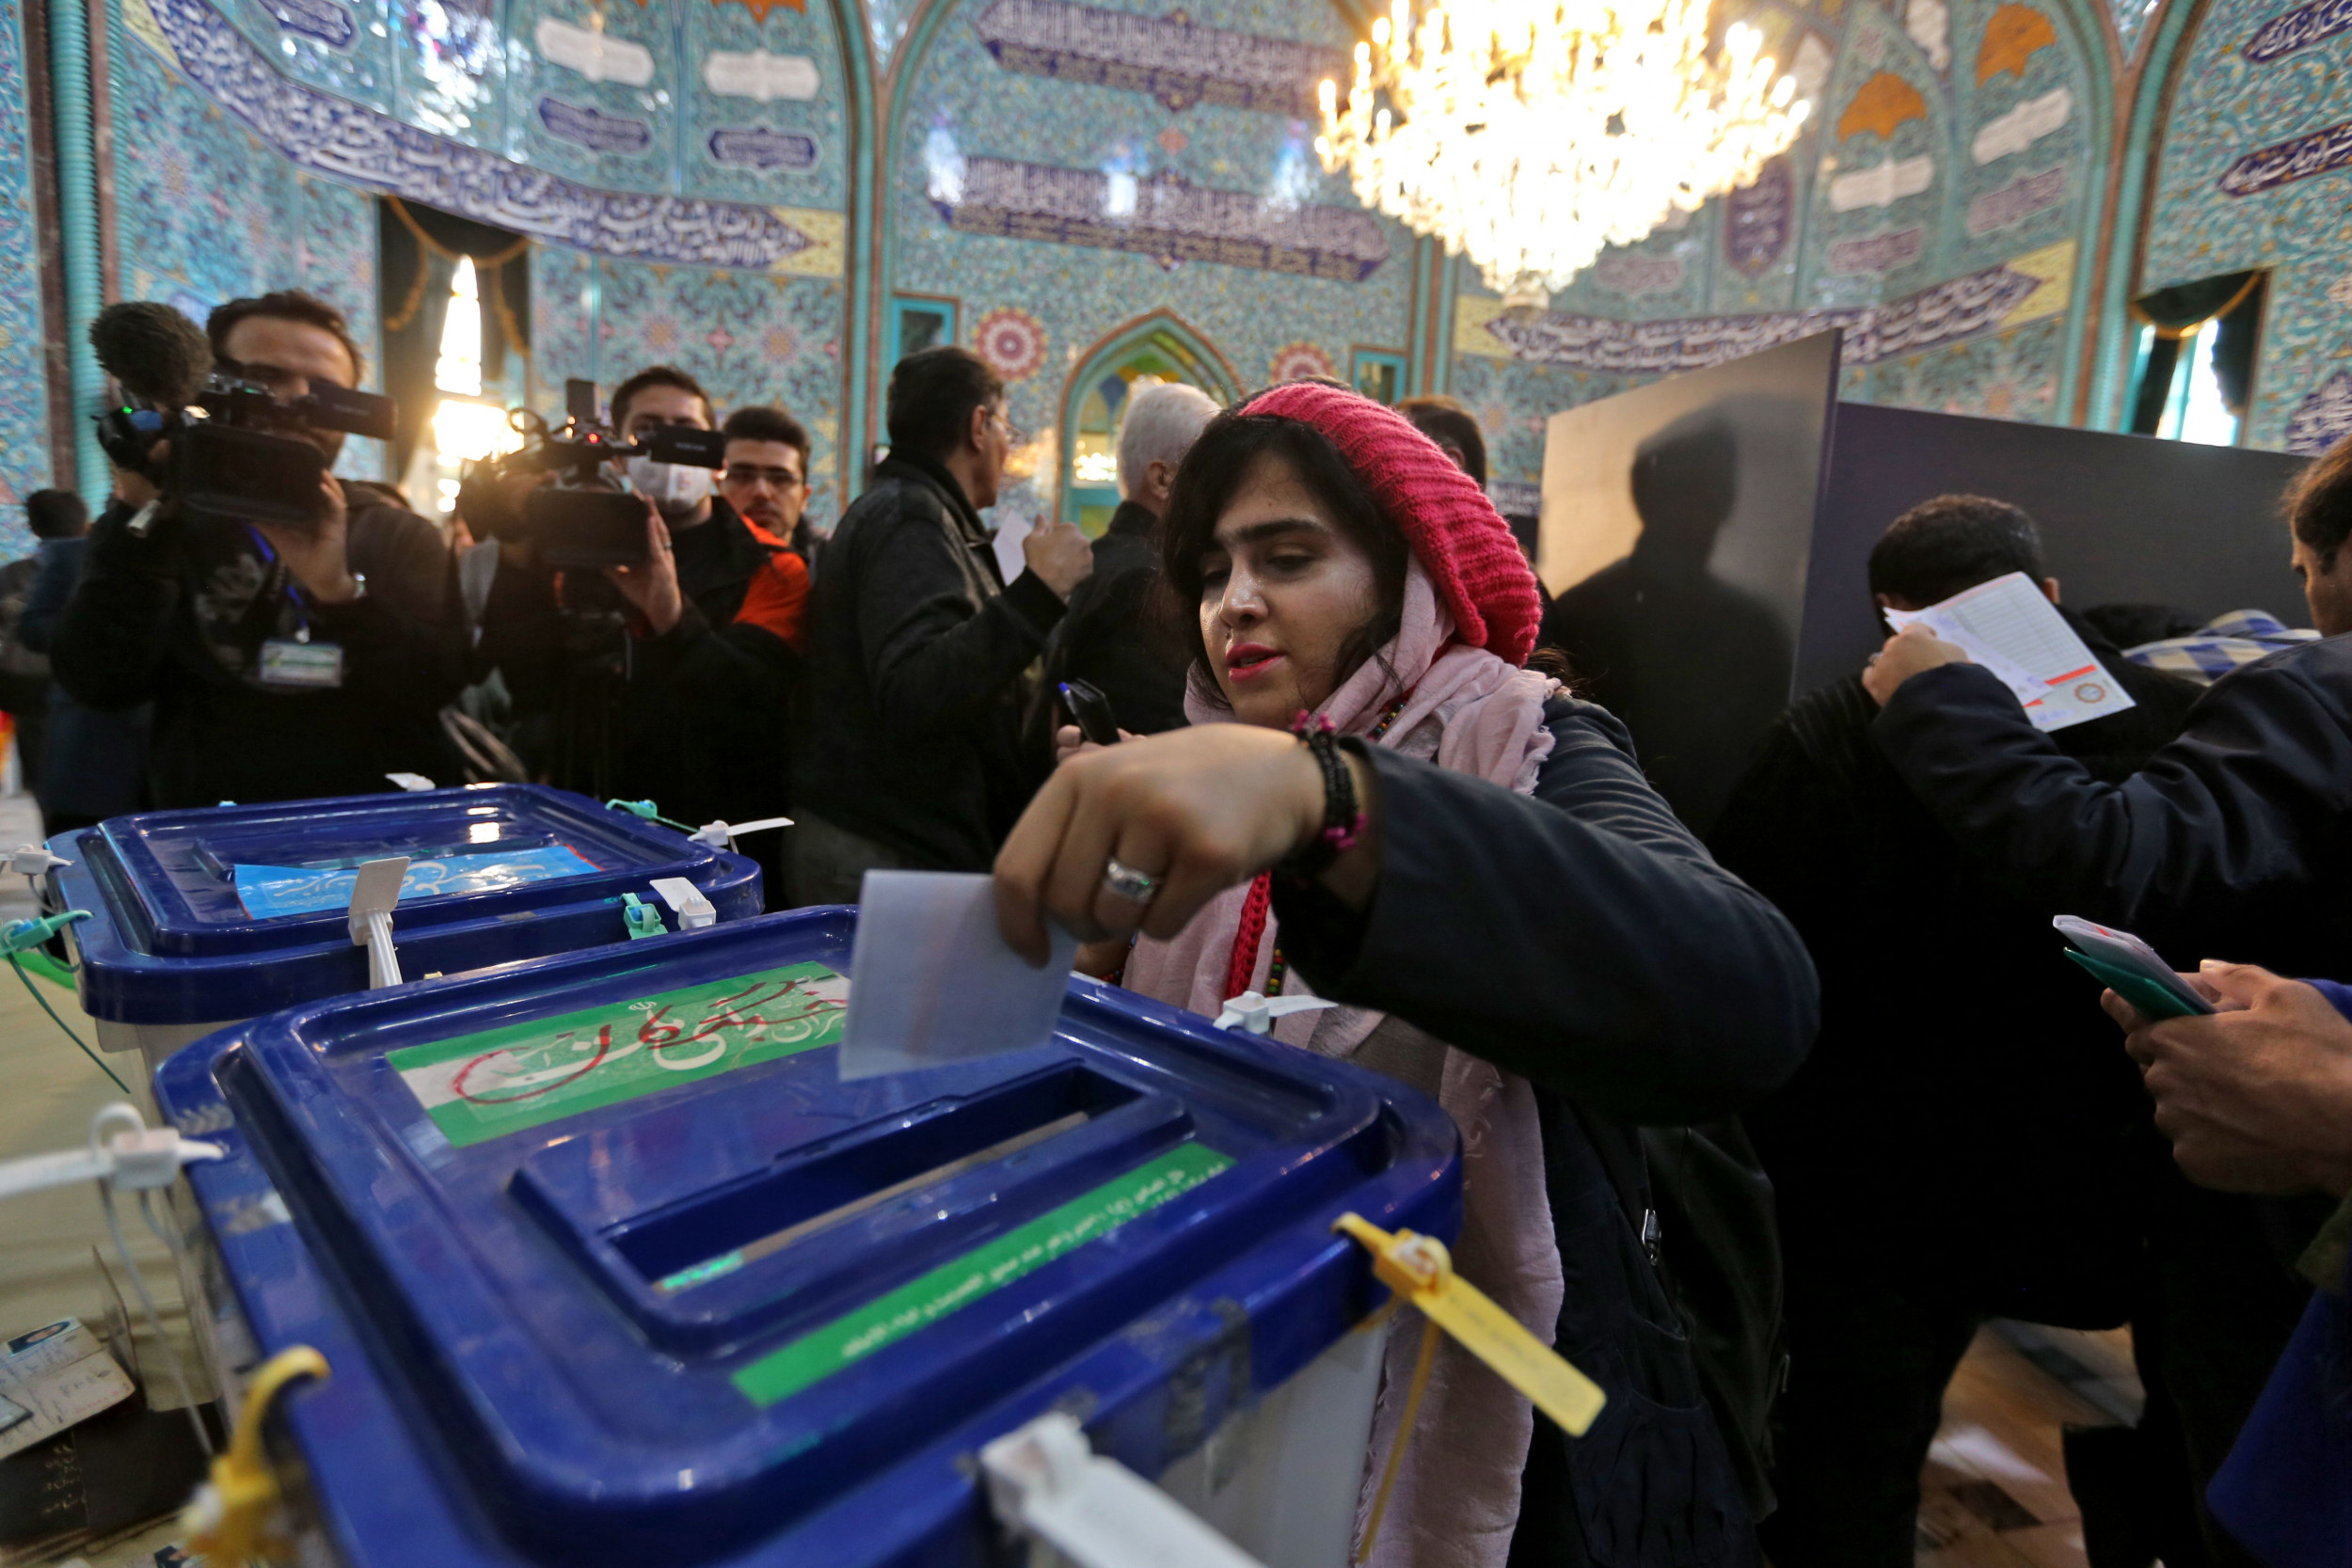 Iran Presidential Adviser Warns Low Election Turnout Will 'Please' Enemies